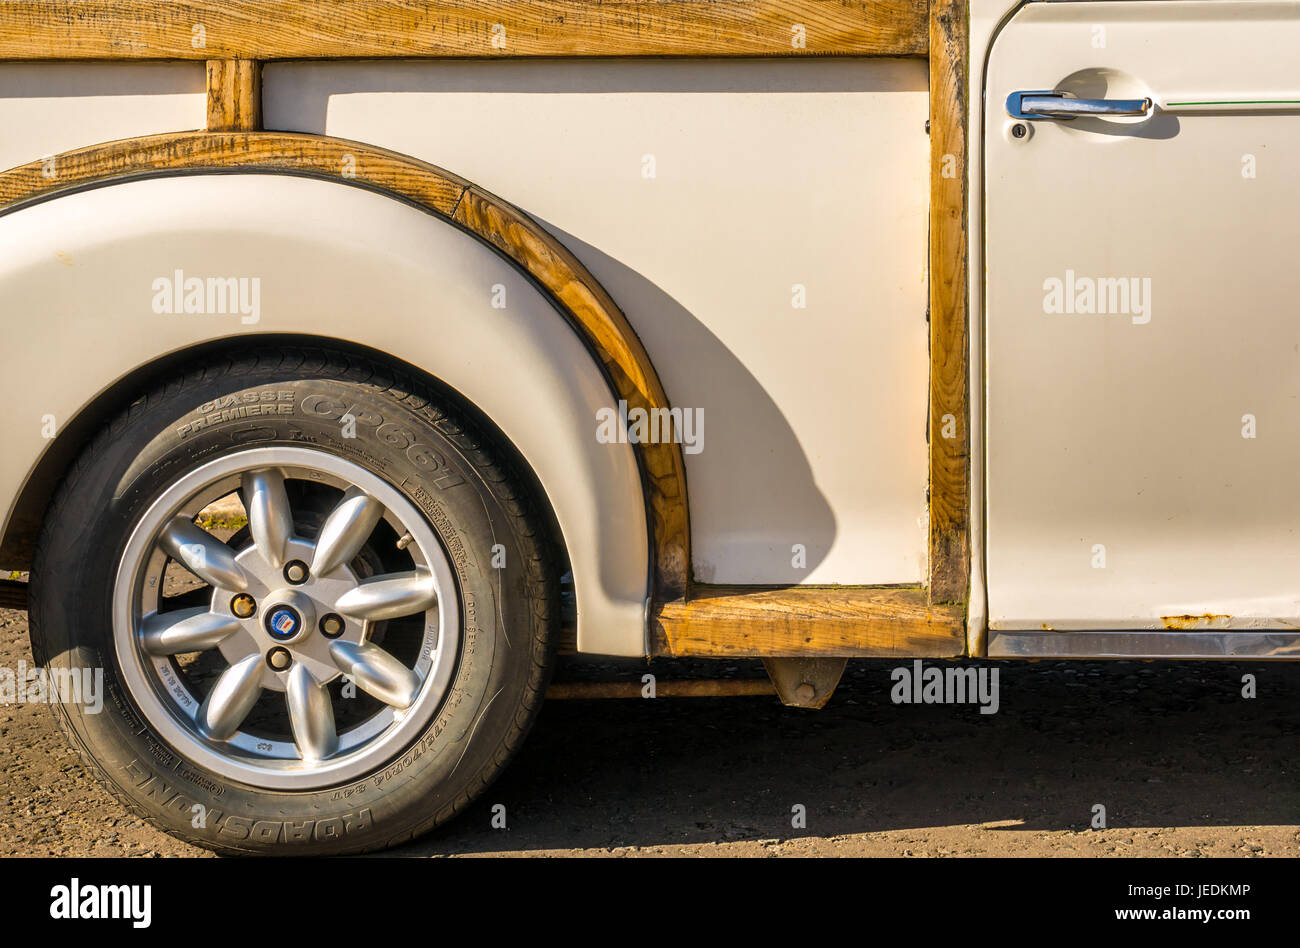 Close up side view of wheel arch, tyre, and door of vintage white Morris Minor Traveller estate car, East Lothian, - Stock Image